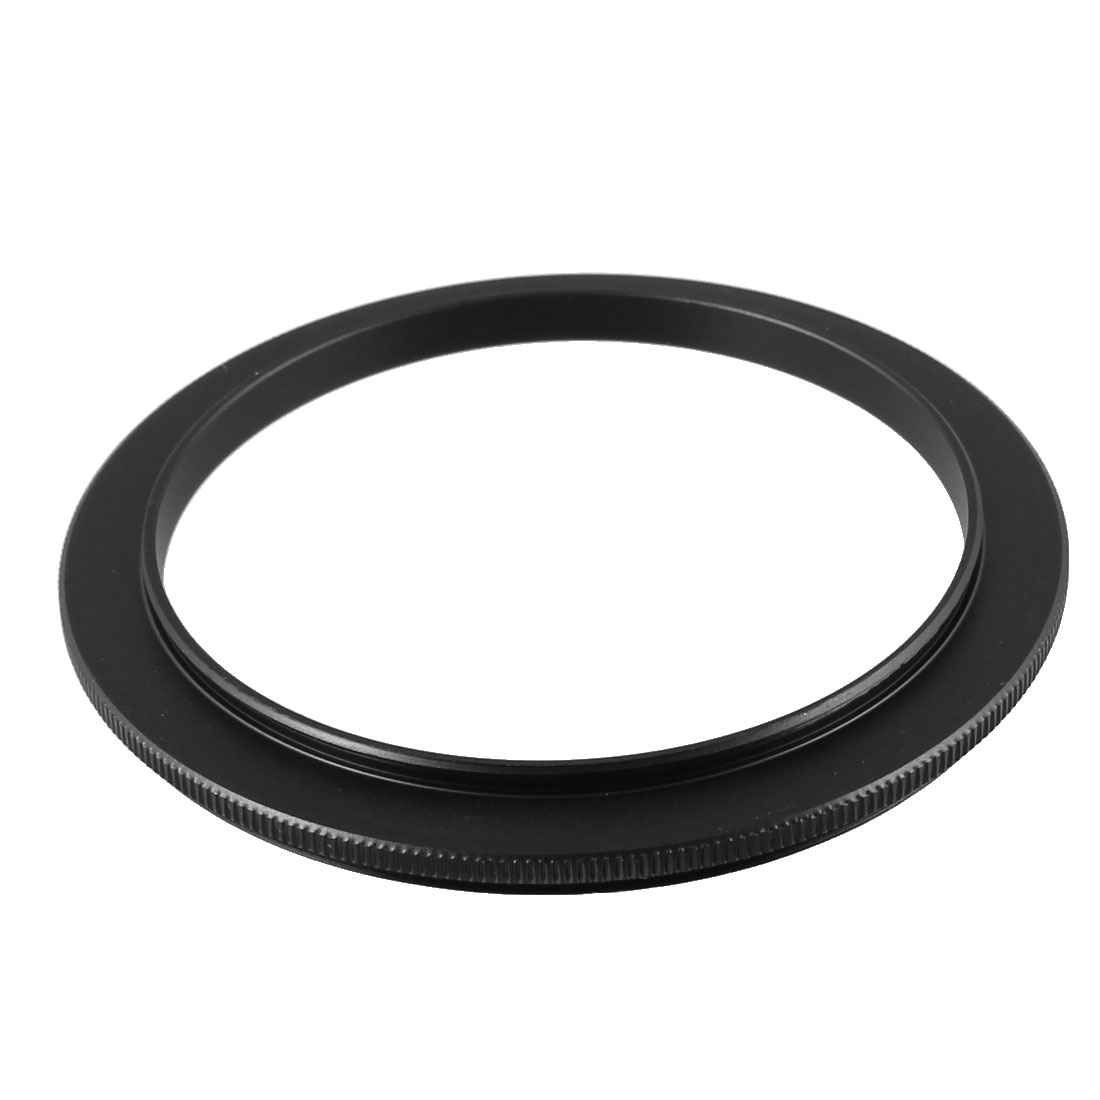 62mm-72mm 62mm to 72mm Male to Male Step up Ring Adapter Black for Camera